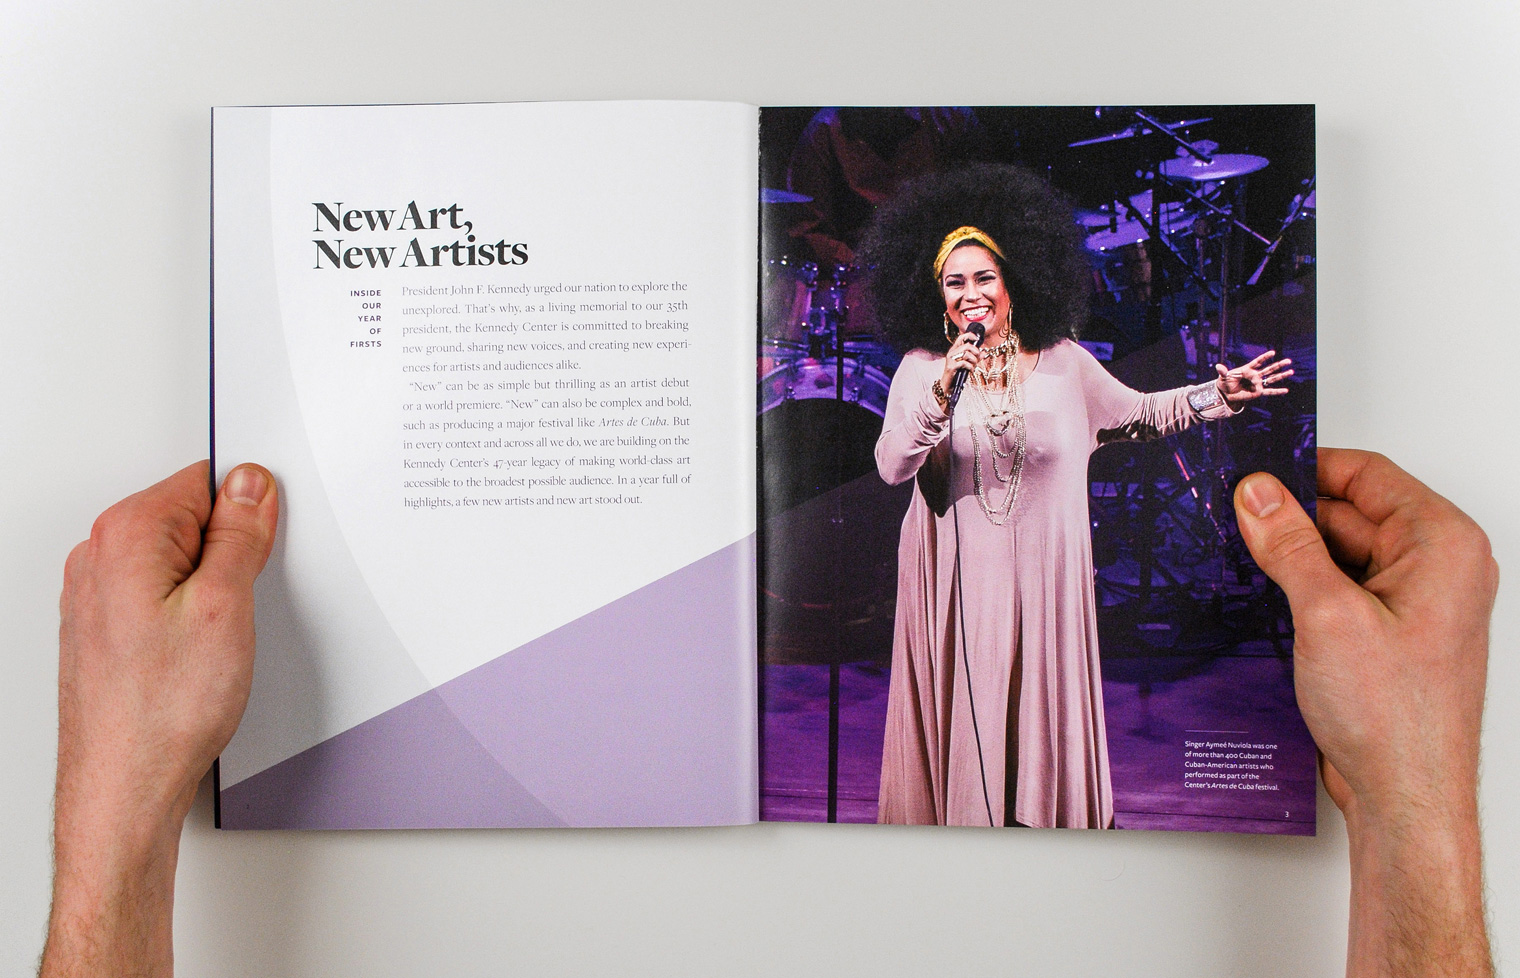 2018 Kennedy Center Annual Report